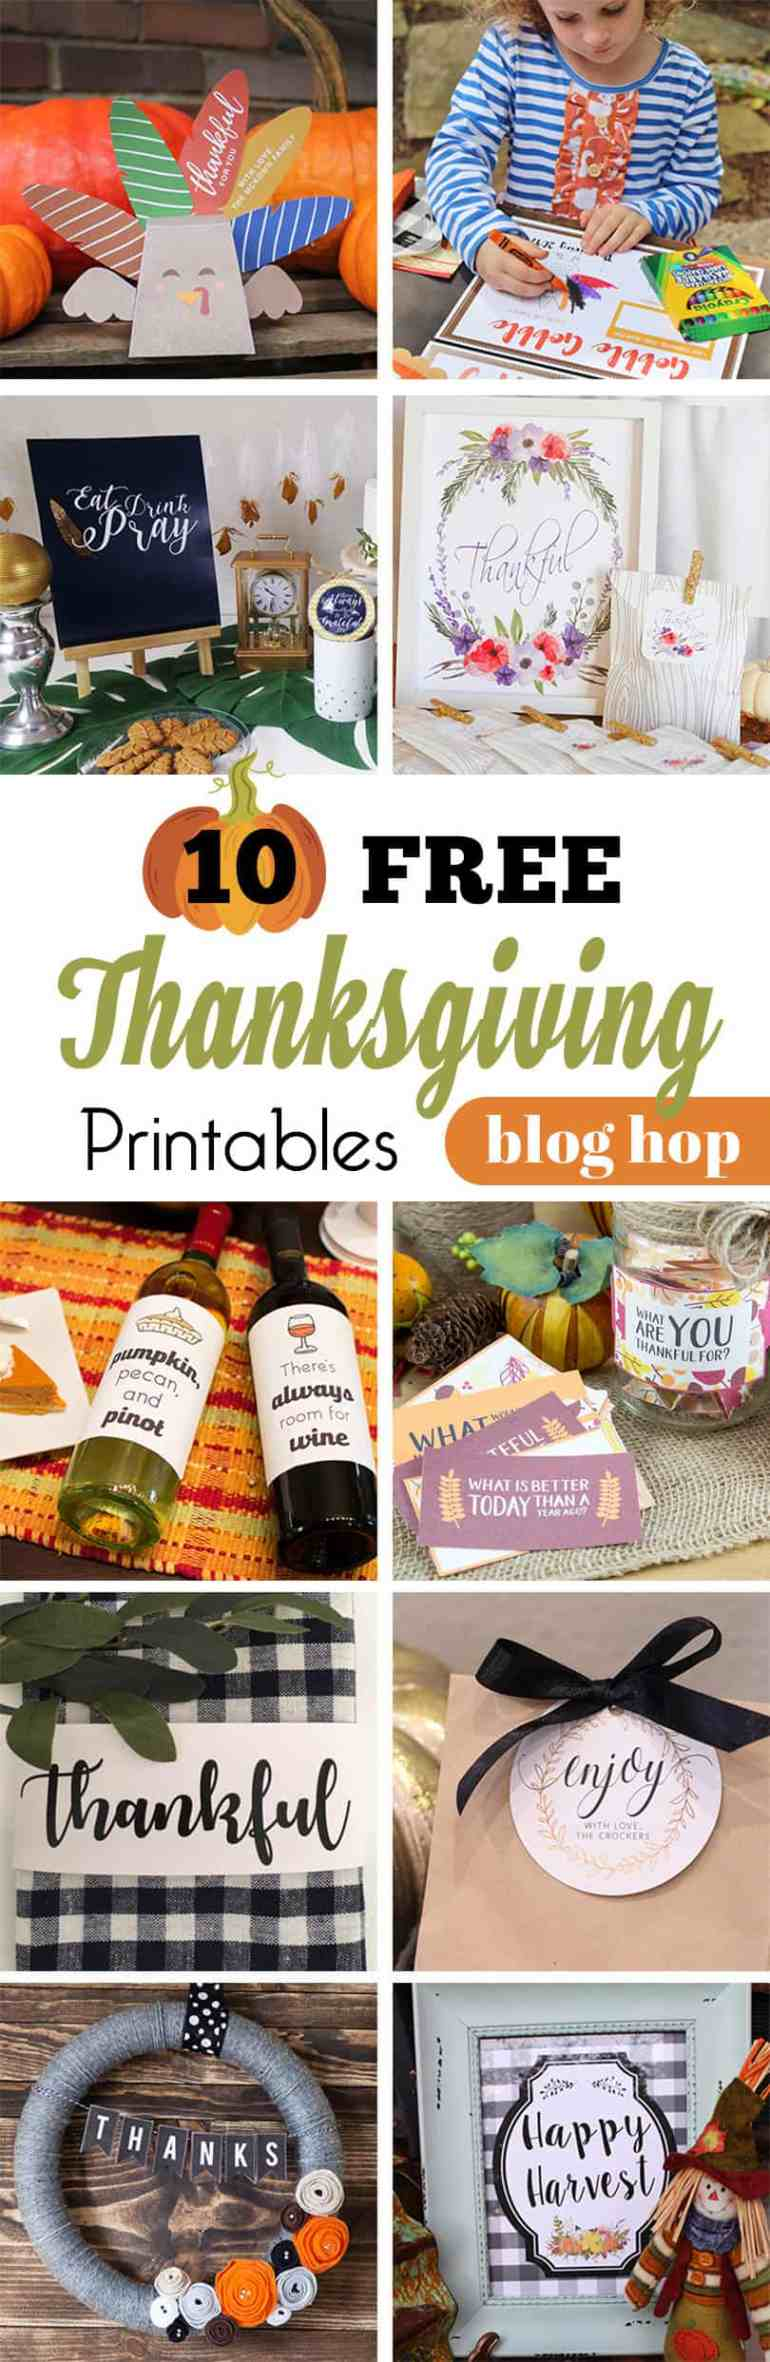 Free Thanksgiving Printables Blog Hop